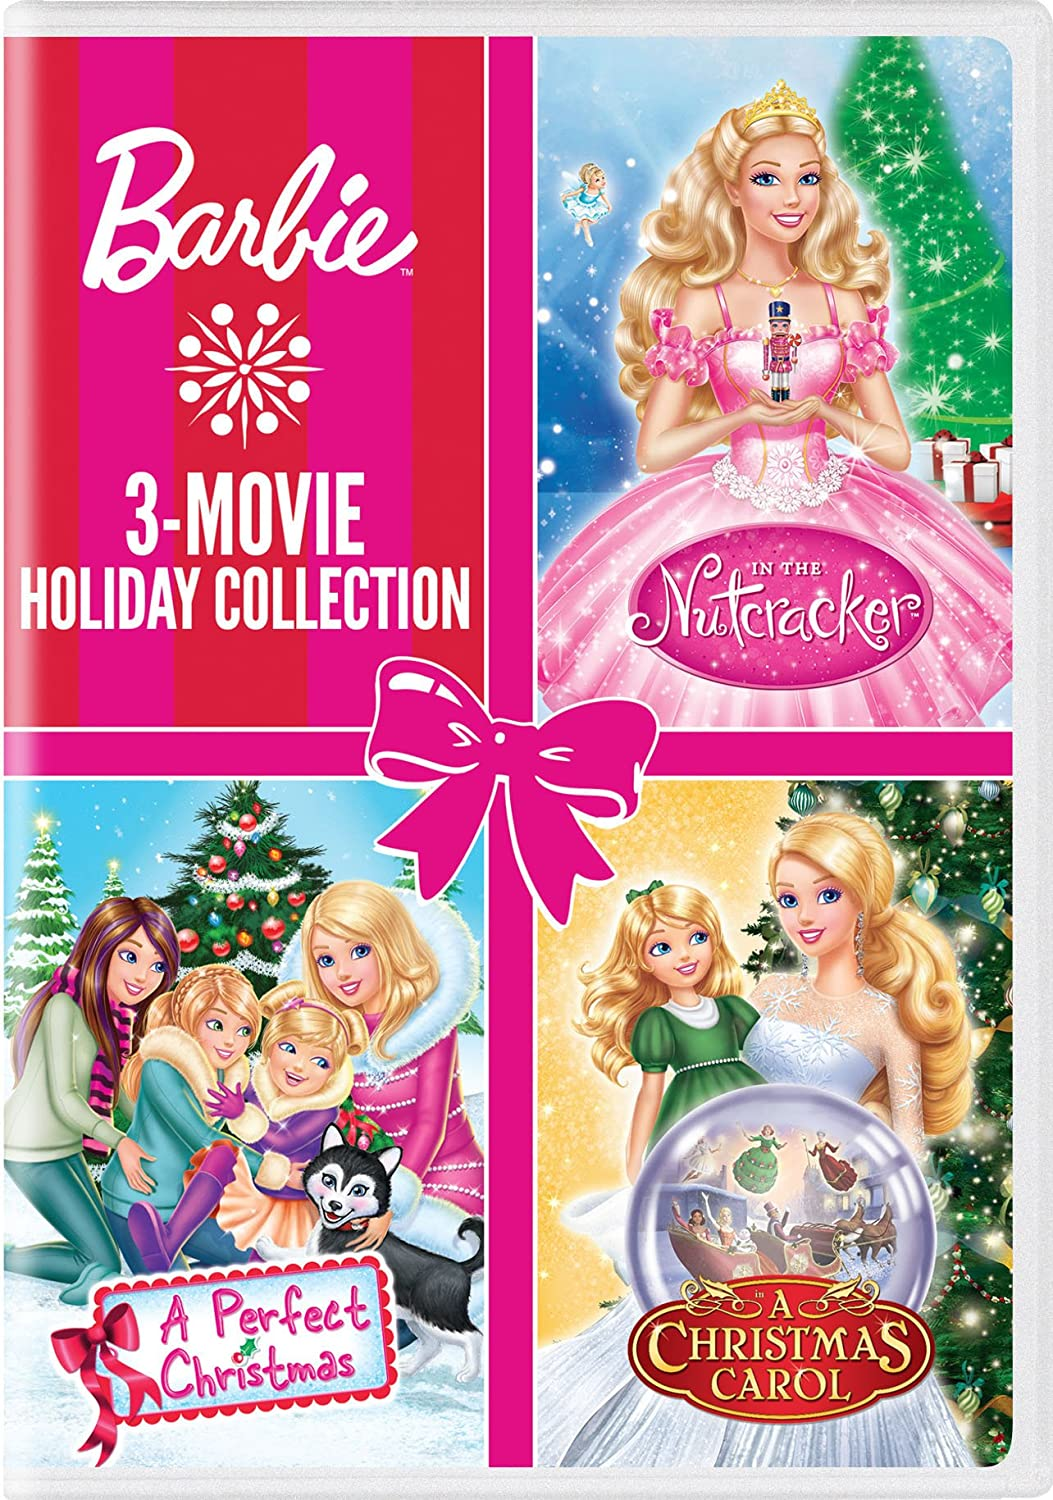 Amazon.com: Barbie: 3-Movie Holiday Collection (Barbie: A Perfect ...